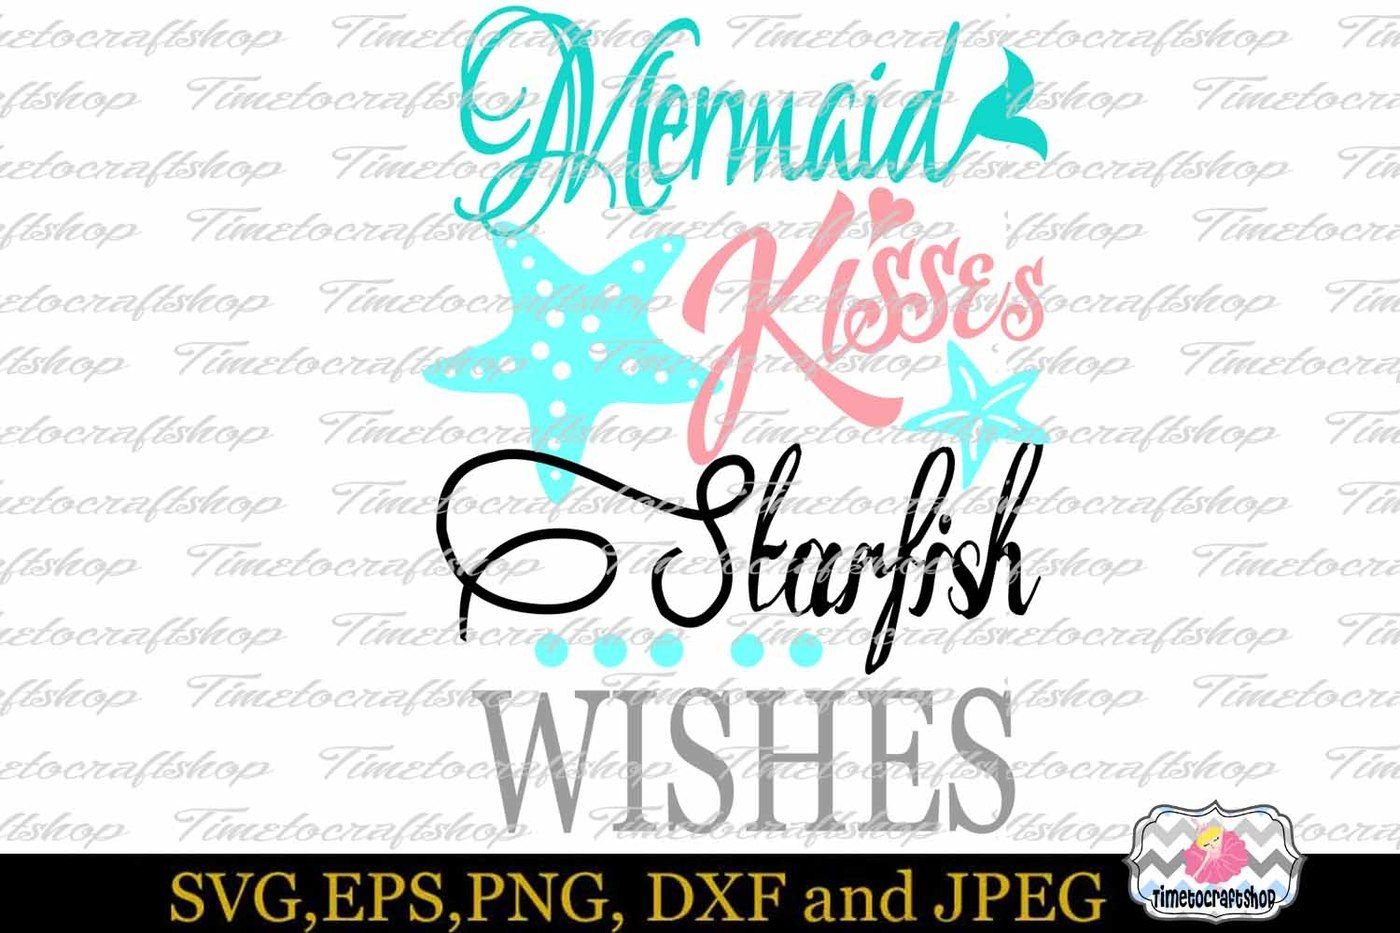 SVG, Eps, Dxf & Png Cutting Files For Mermaid Kisses